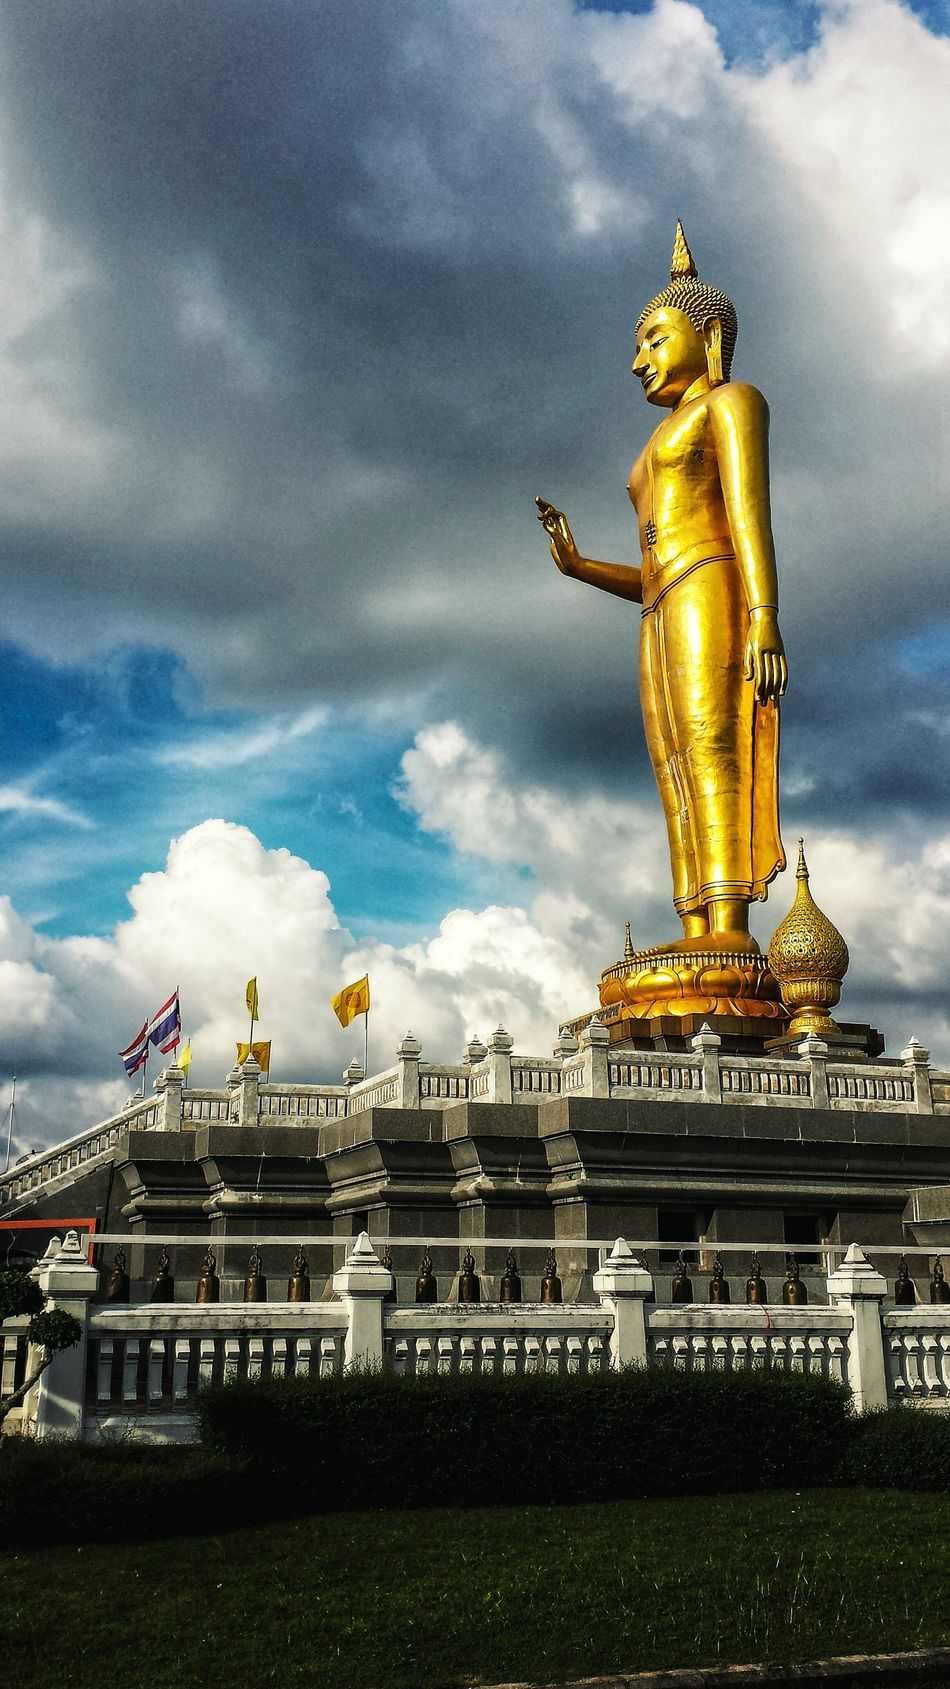 Showcase: January Phra Phutthamongkol Maharat Low Angle ASIA Southeast Asia Outdoors Southern Thailand Clouds Blue Sky Statue Mountain Buddhism Buddhist Temple Songkhla Afternoon Songkhla Province Spotted In Thailand